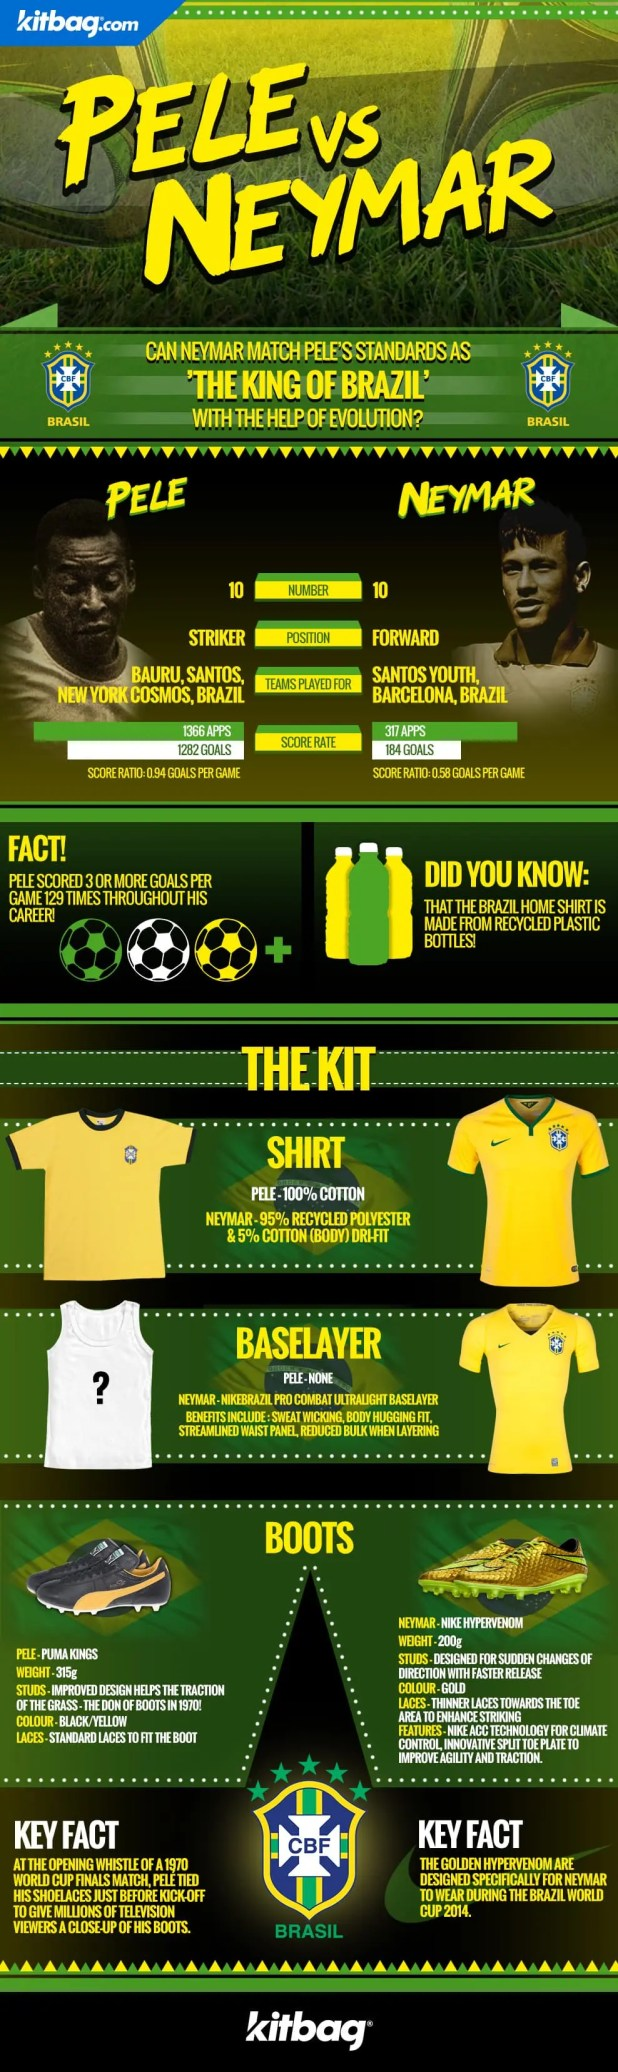 The King of Brazil: Pele vs Neymar